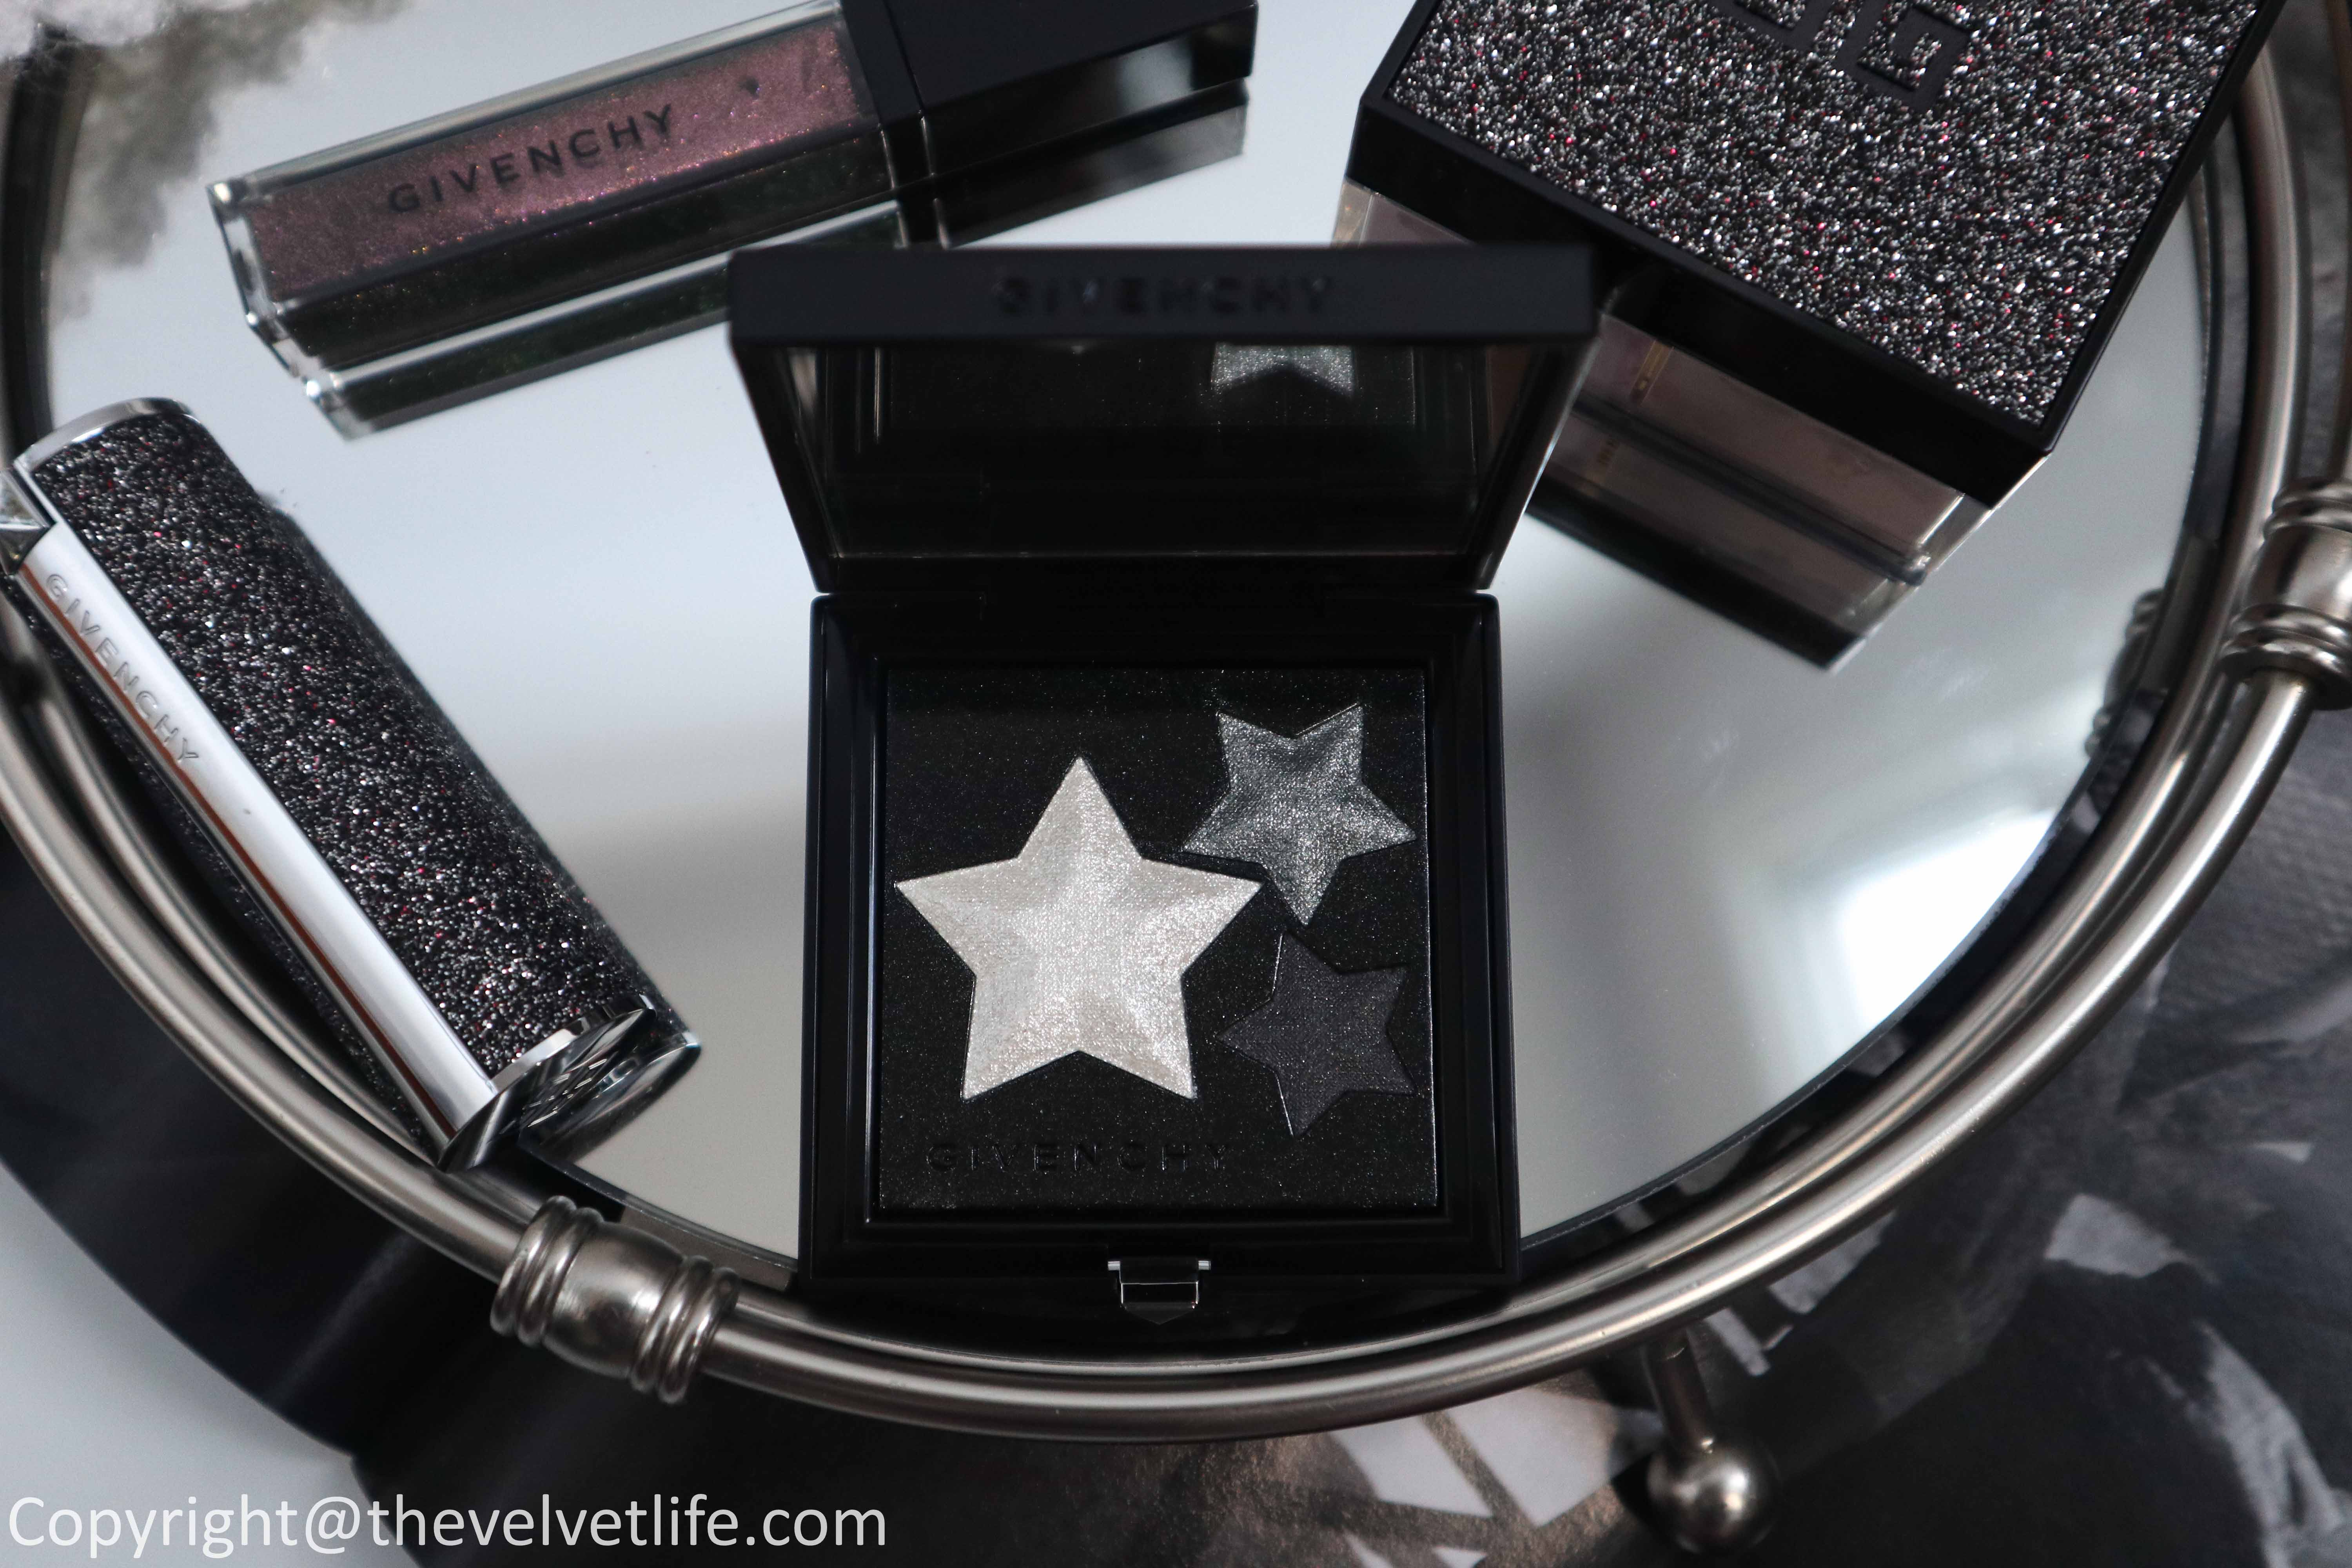 Givenchy holiday 2020 makeup collection review swatches Black To Light Palette, Prisme Libre Loose Powder, Le Rouge, Le Rouge Deep Velvet, and L'interdit Lip Top Coat